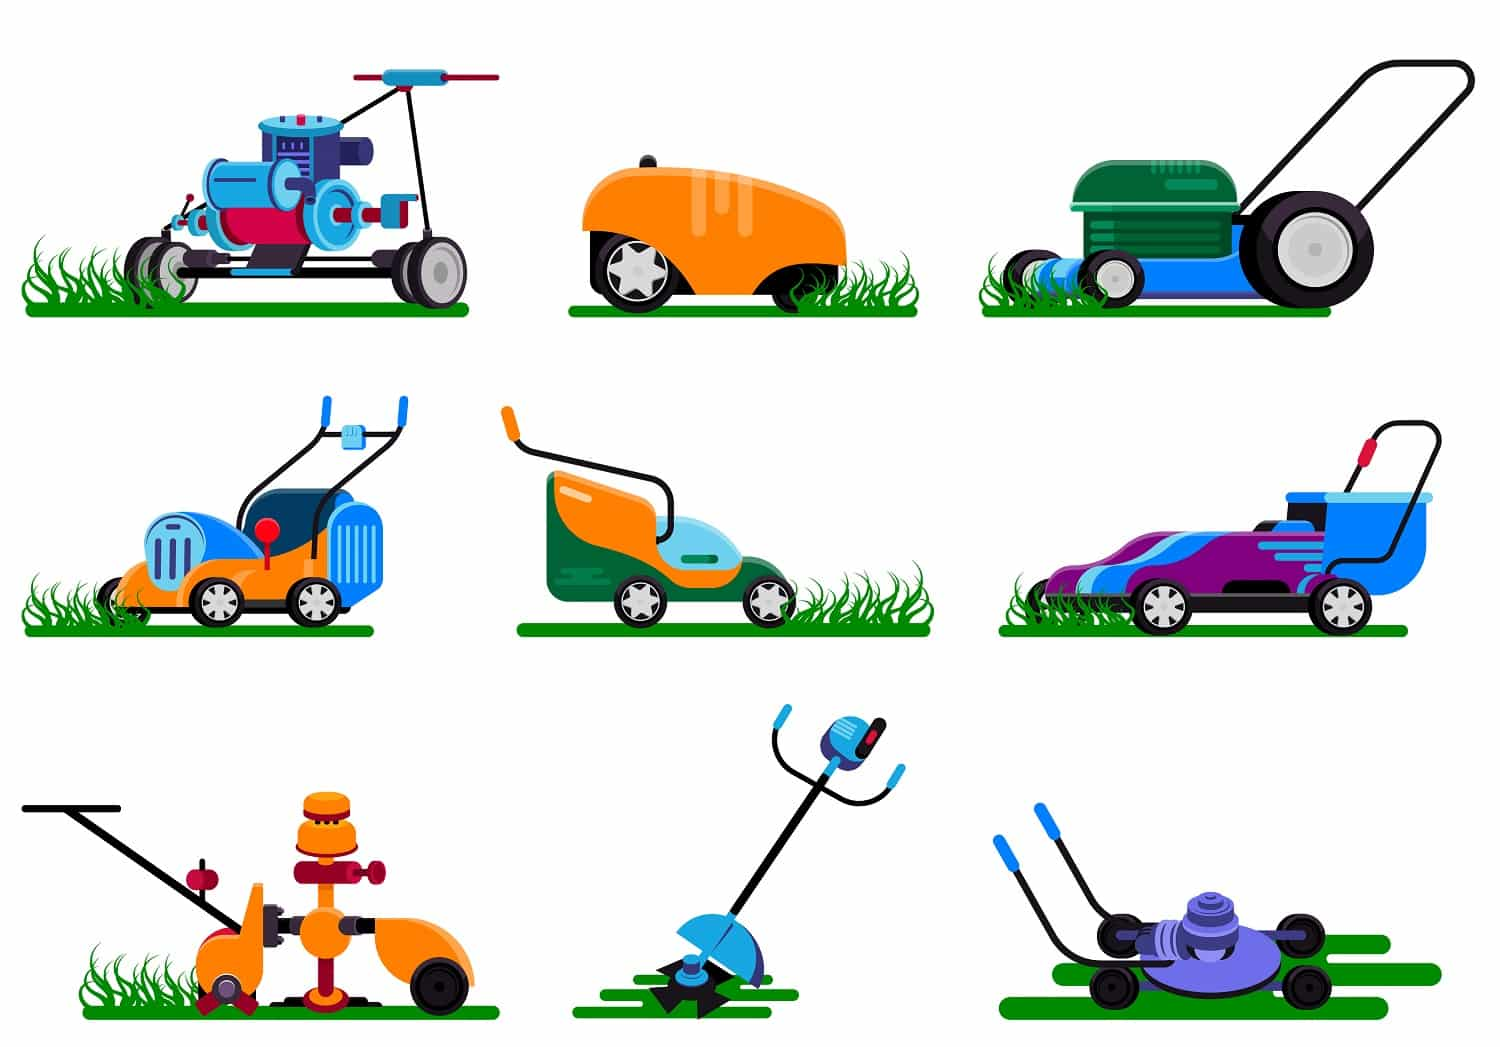 Lawn mower vector gardening lawnmower electric equipment machine and garden mowing trimmer illustration machinery set of power tools lawn-mower isolated on white background.